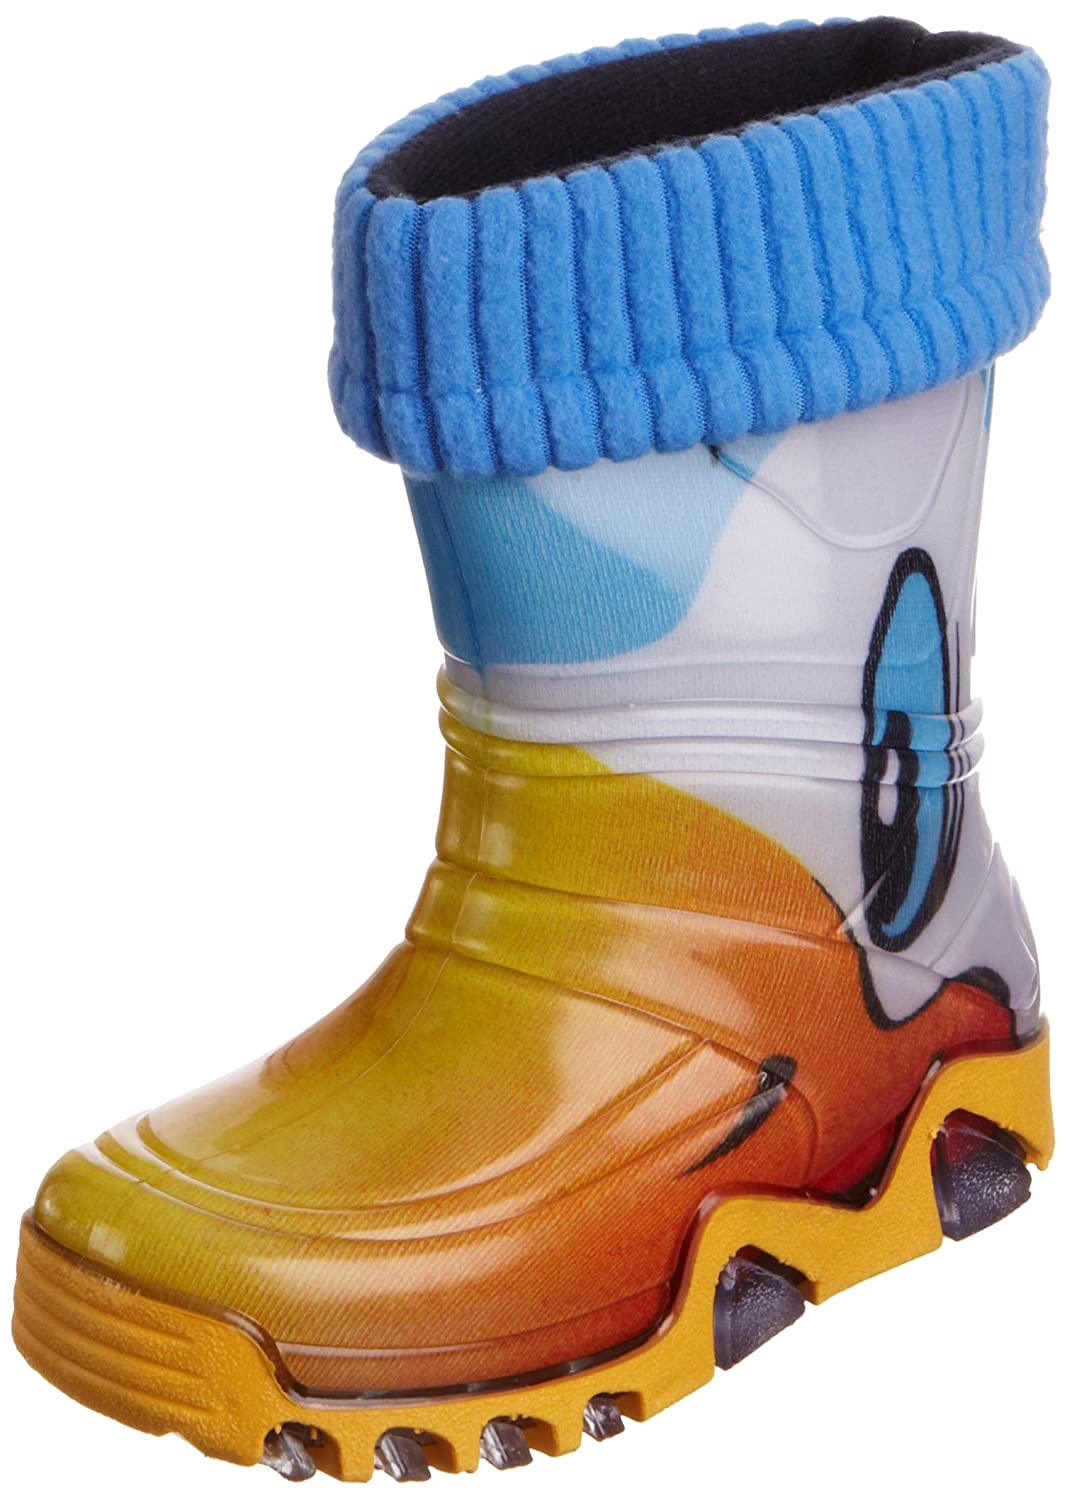 Toughees Shoes Warm Fleece sock Duck Wellies Botas de agua de pvc